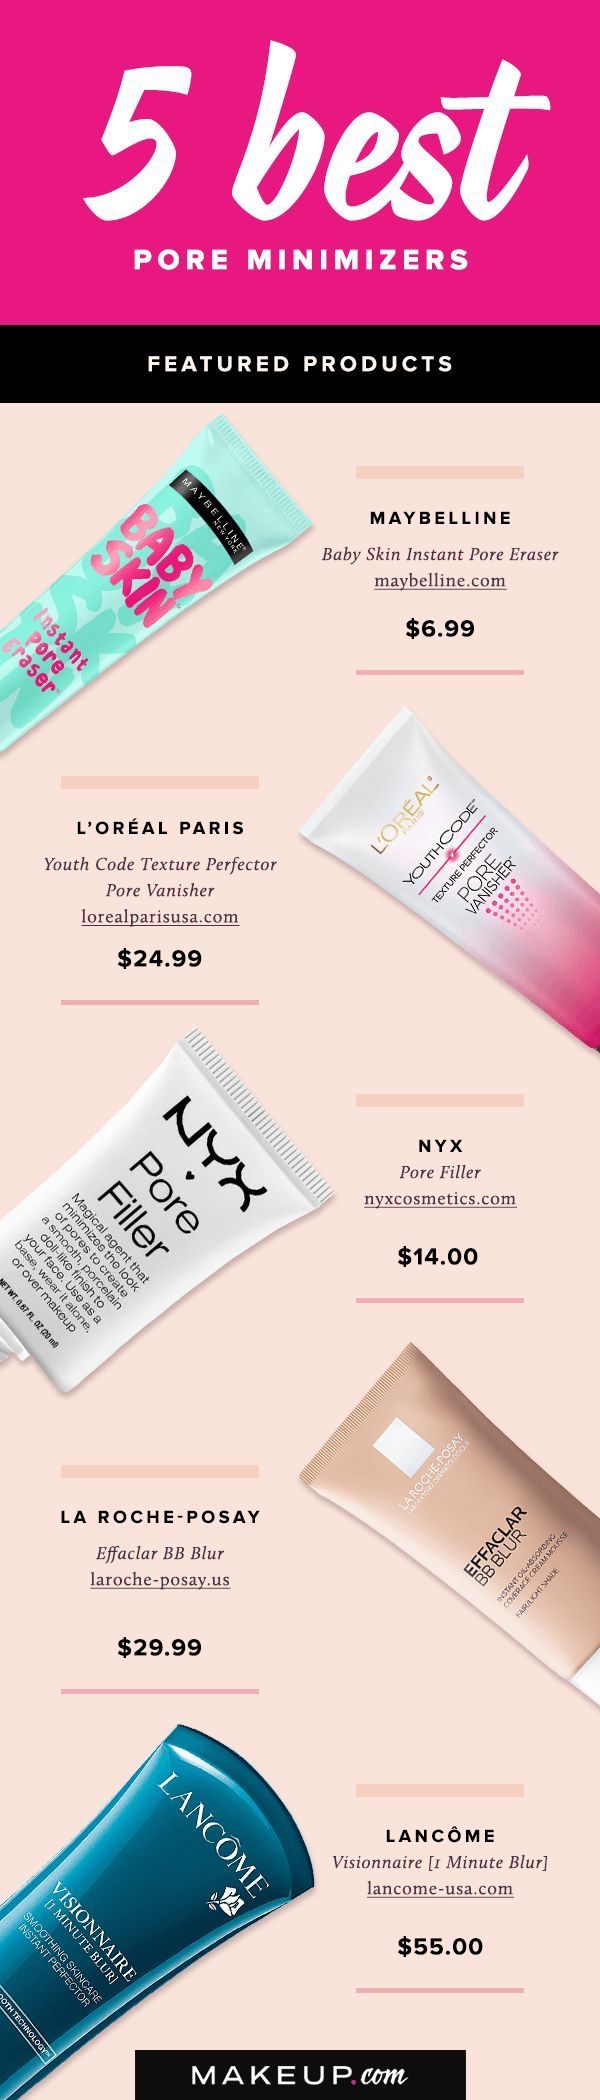 Try these primers for a smooth, poreless complexion.